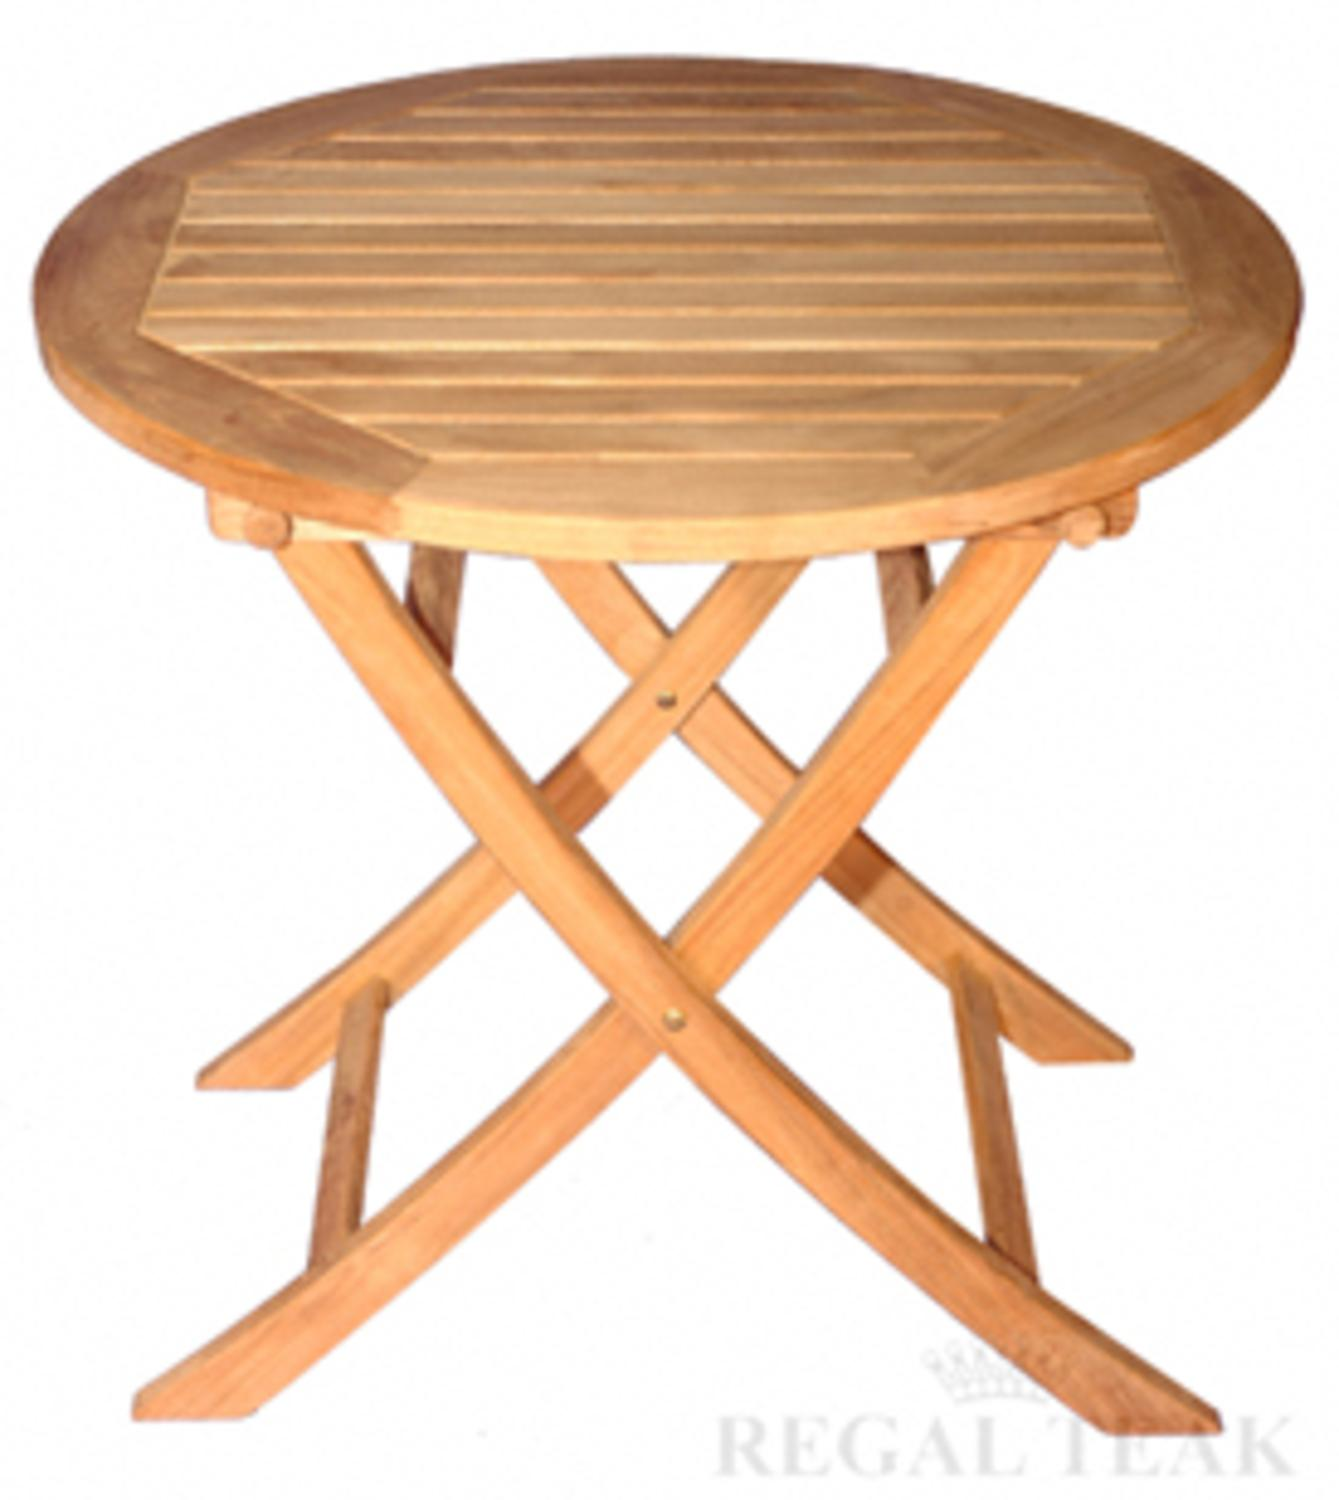 """30"""" Natural Teak Round Outdoor Patio Dining Wooden Balcony Folding Table"""